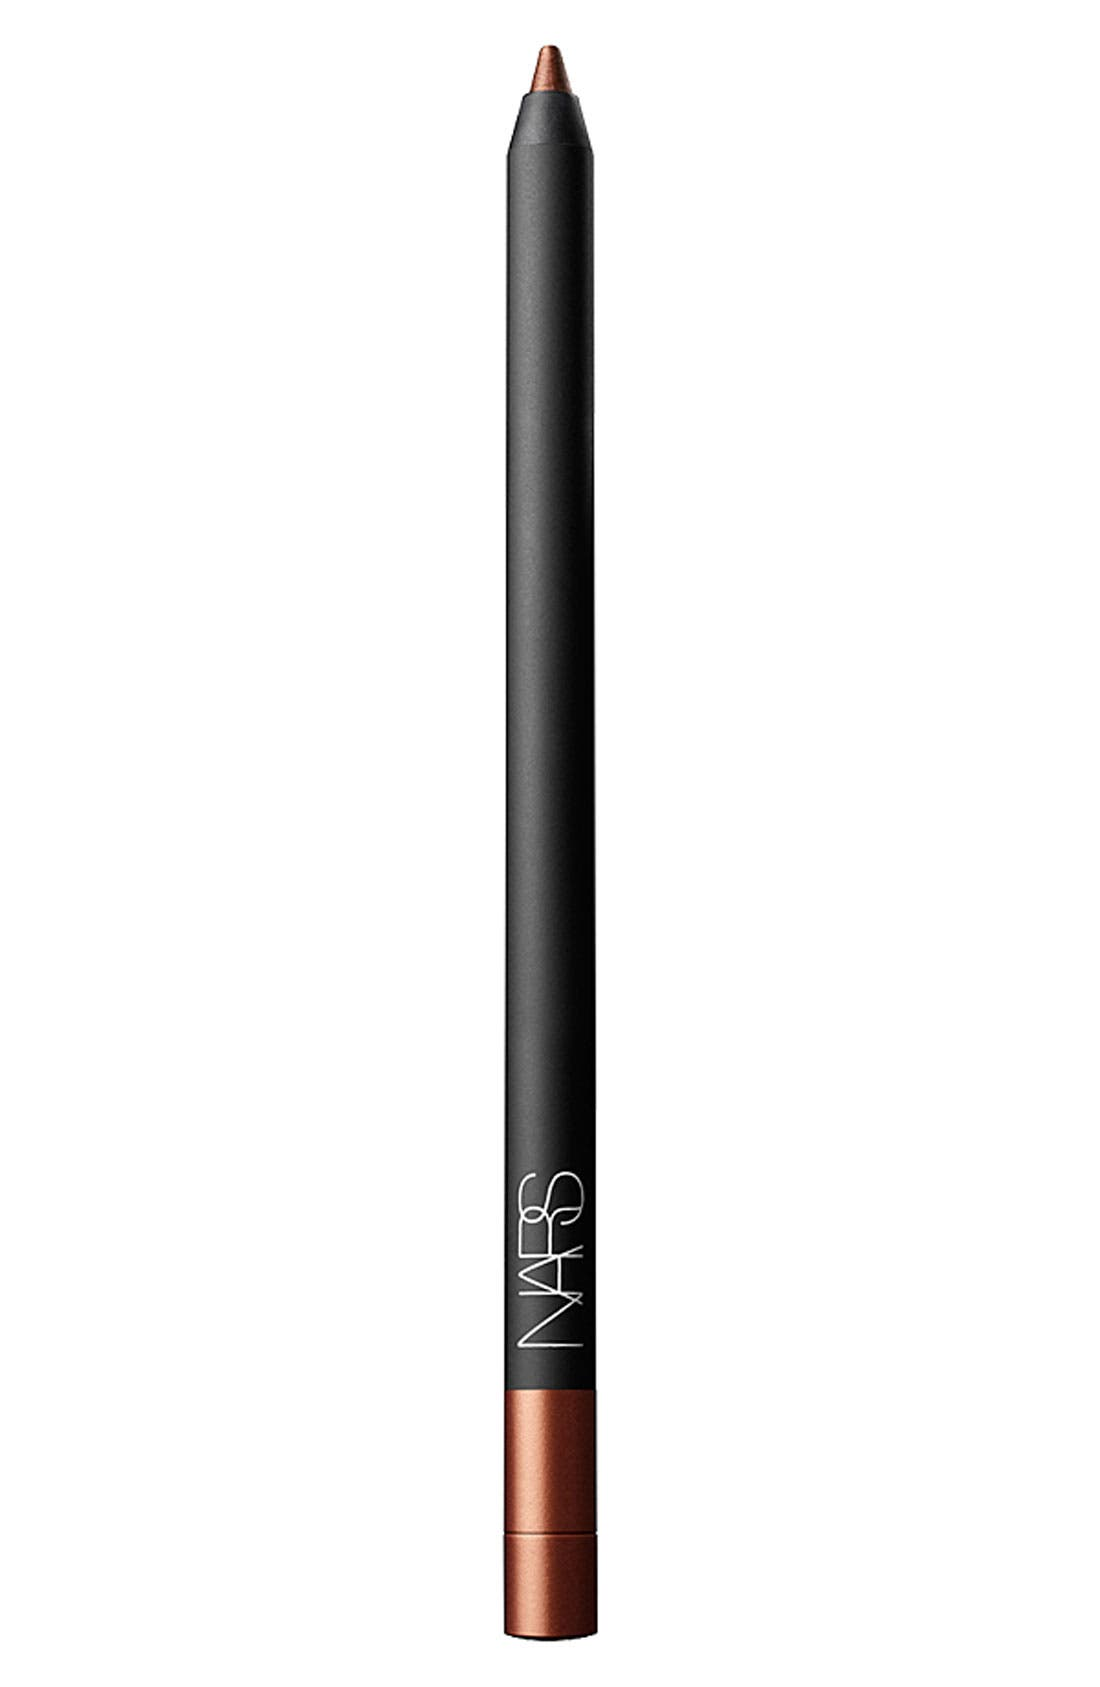 NARS Larger Than Life Long Wear Eyeliner